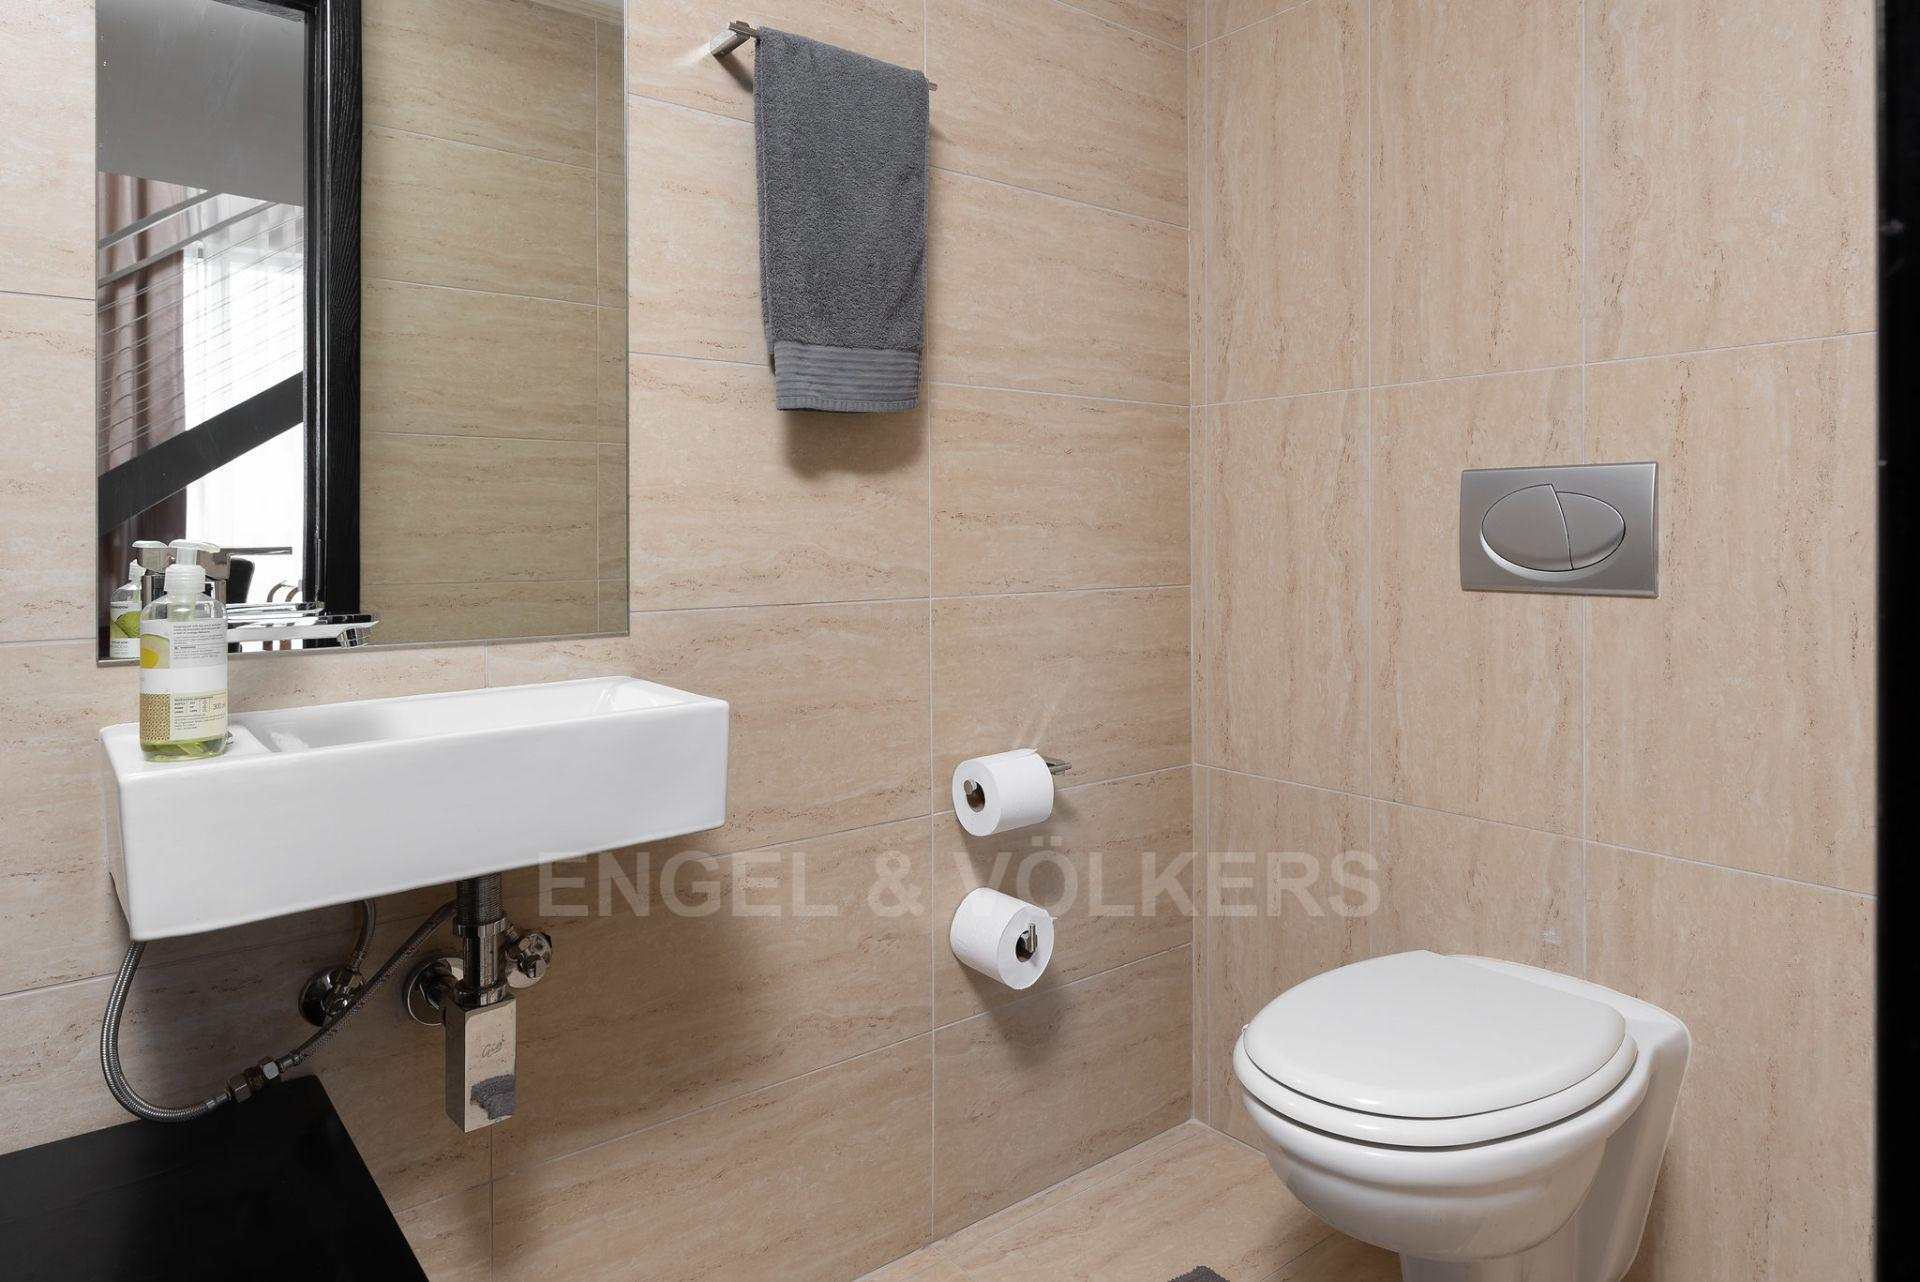 Apartment in City Centre - guest toilet.jpg